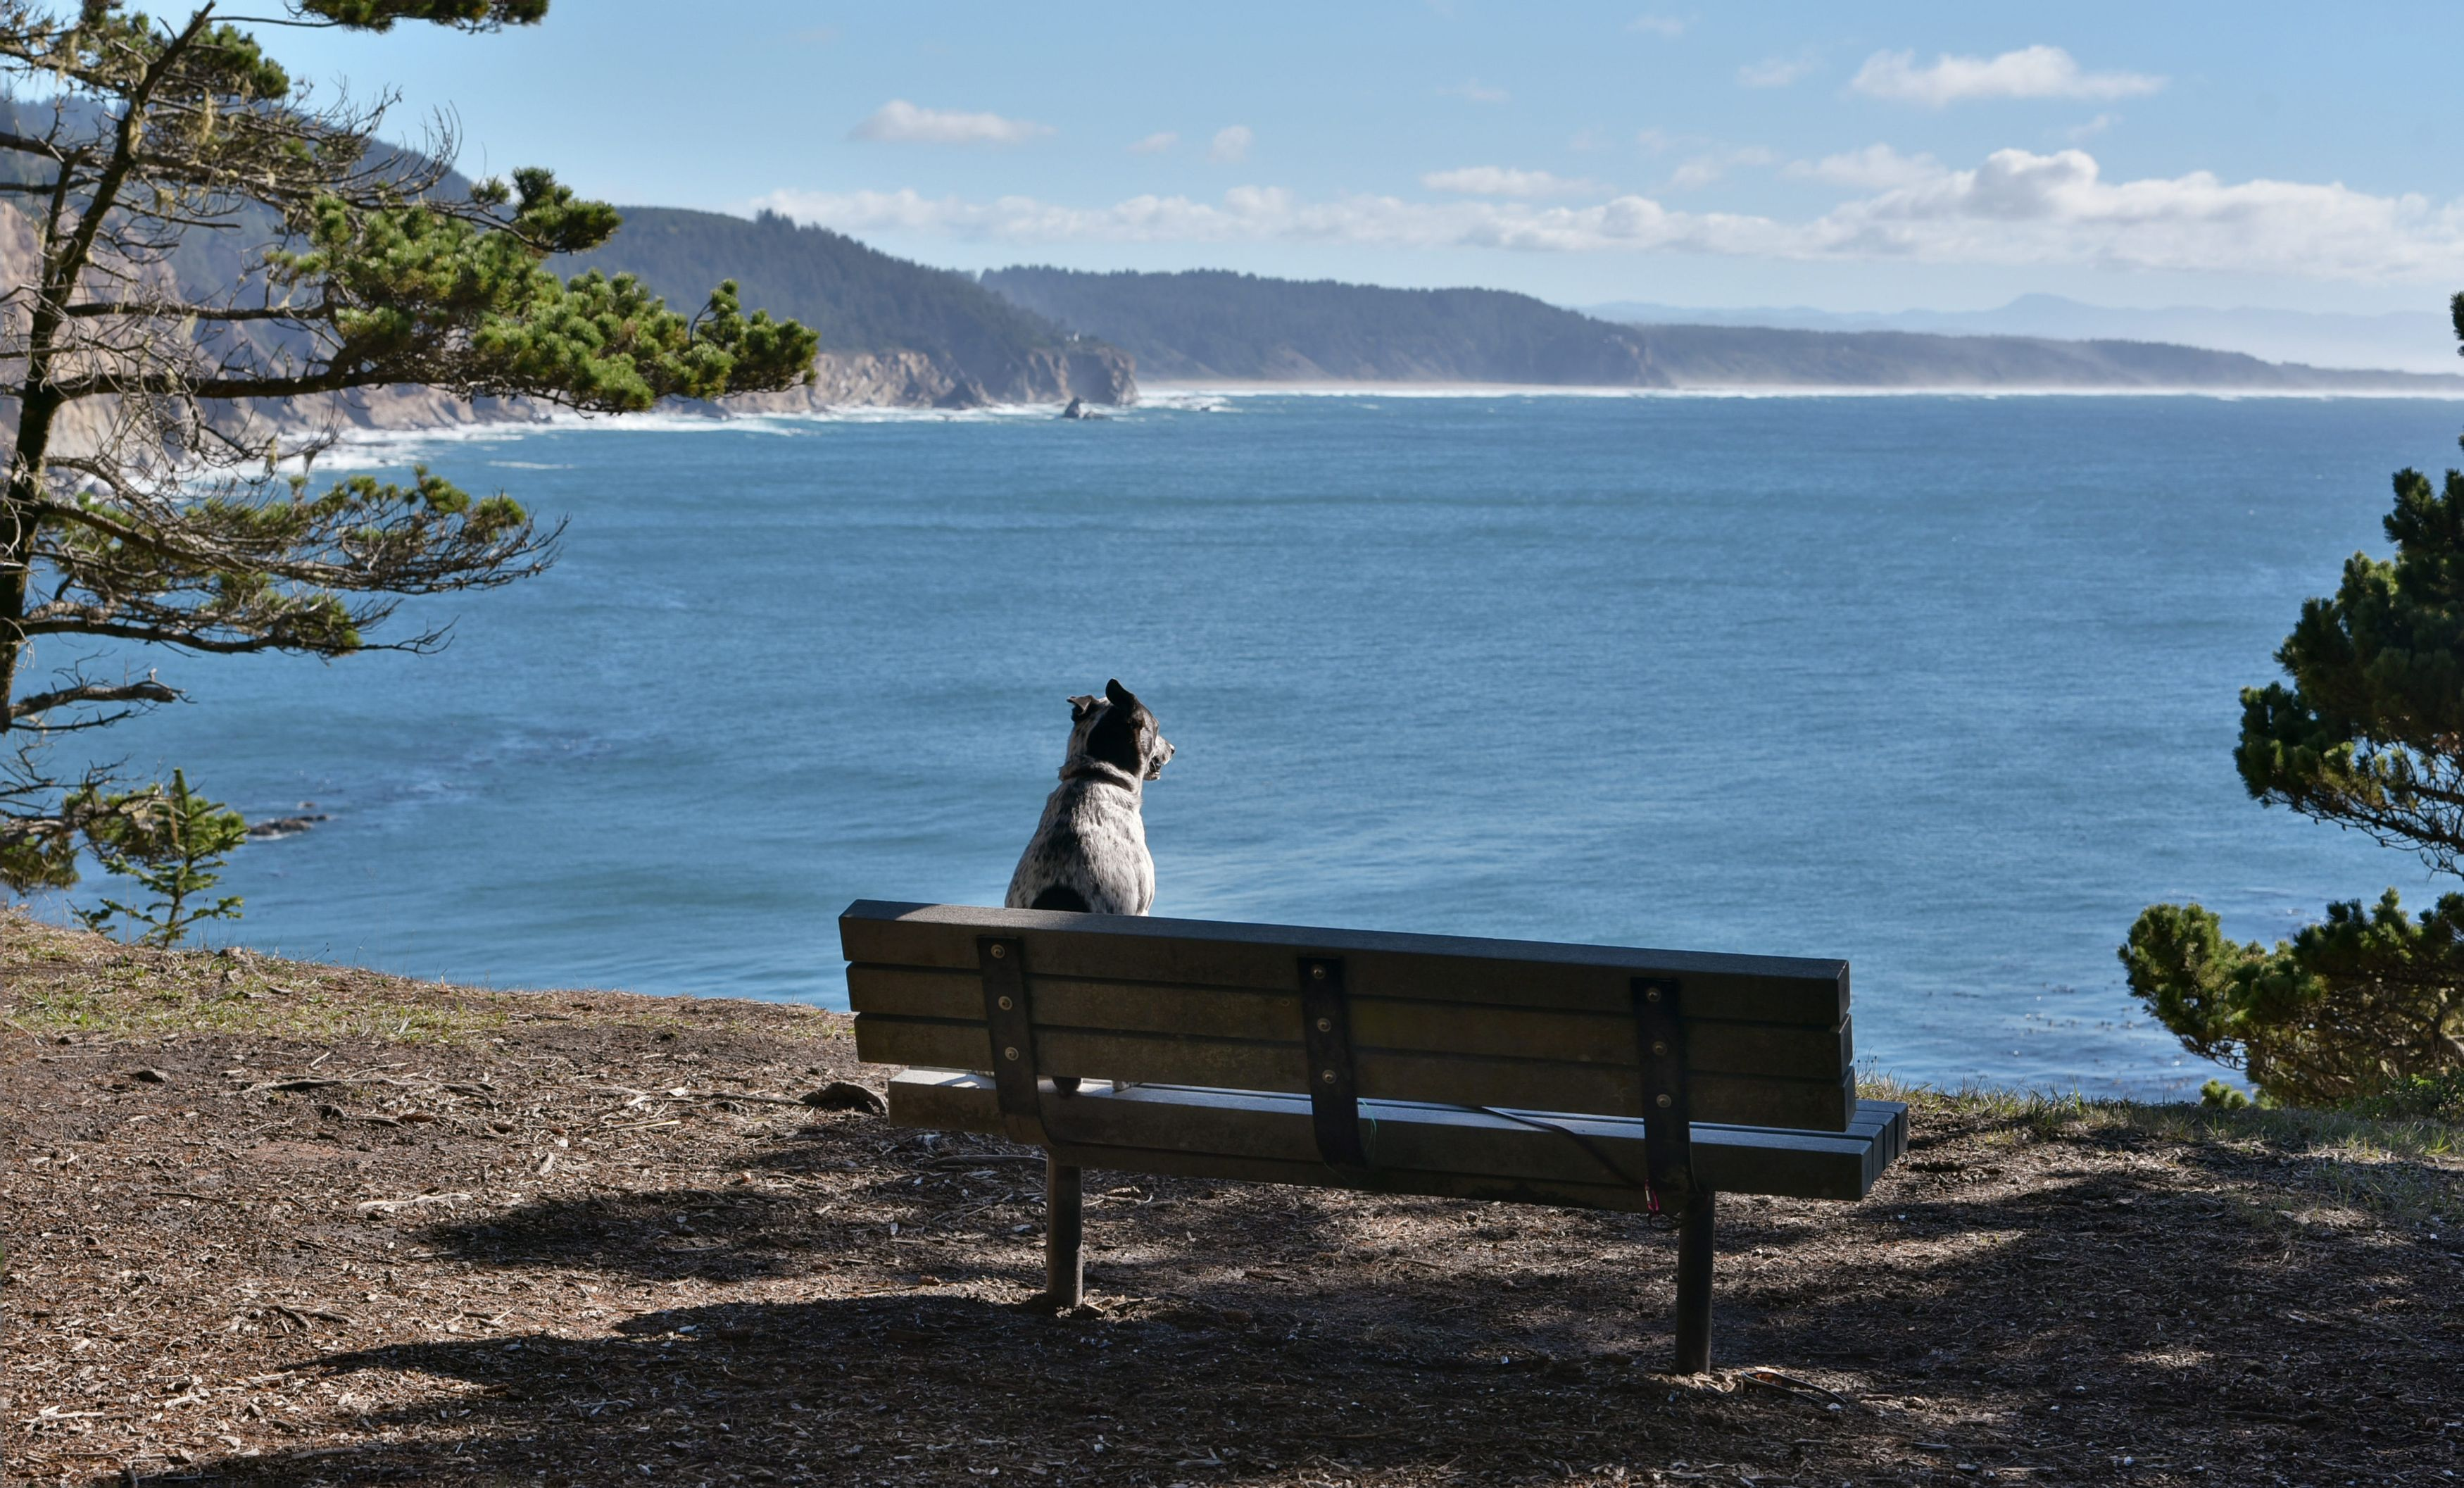 Dog on park bench looking at ocean.